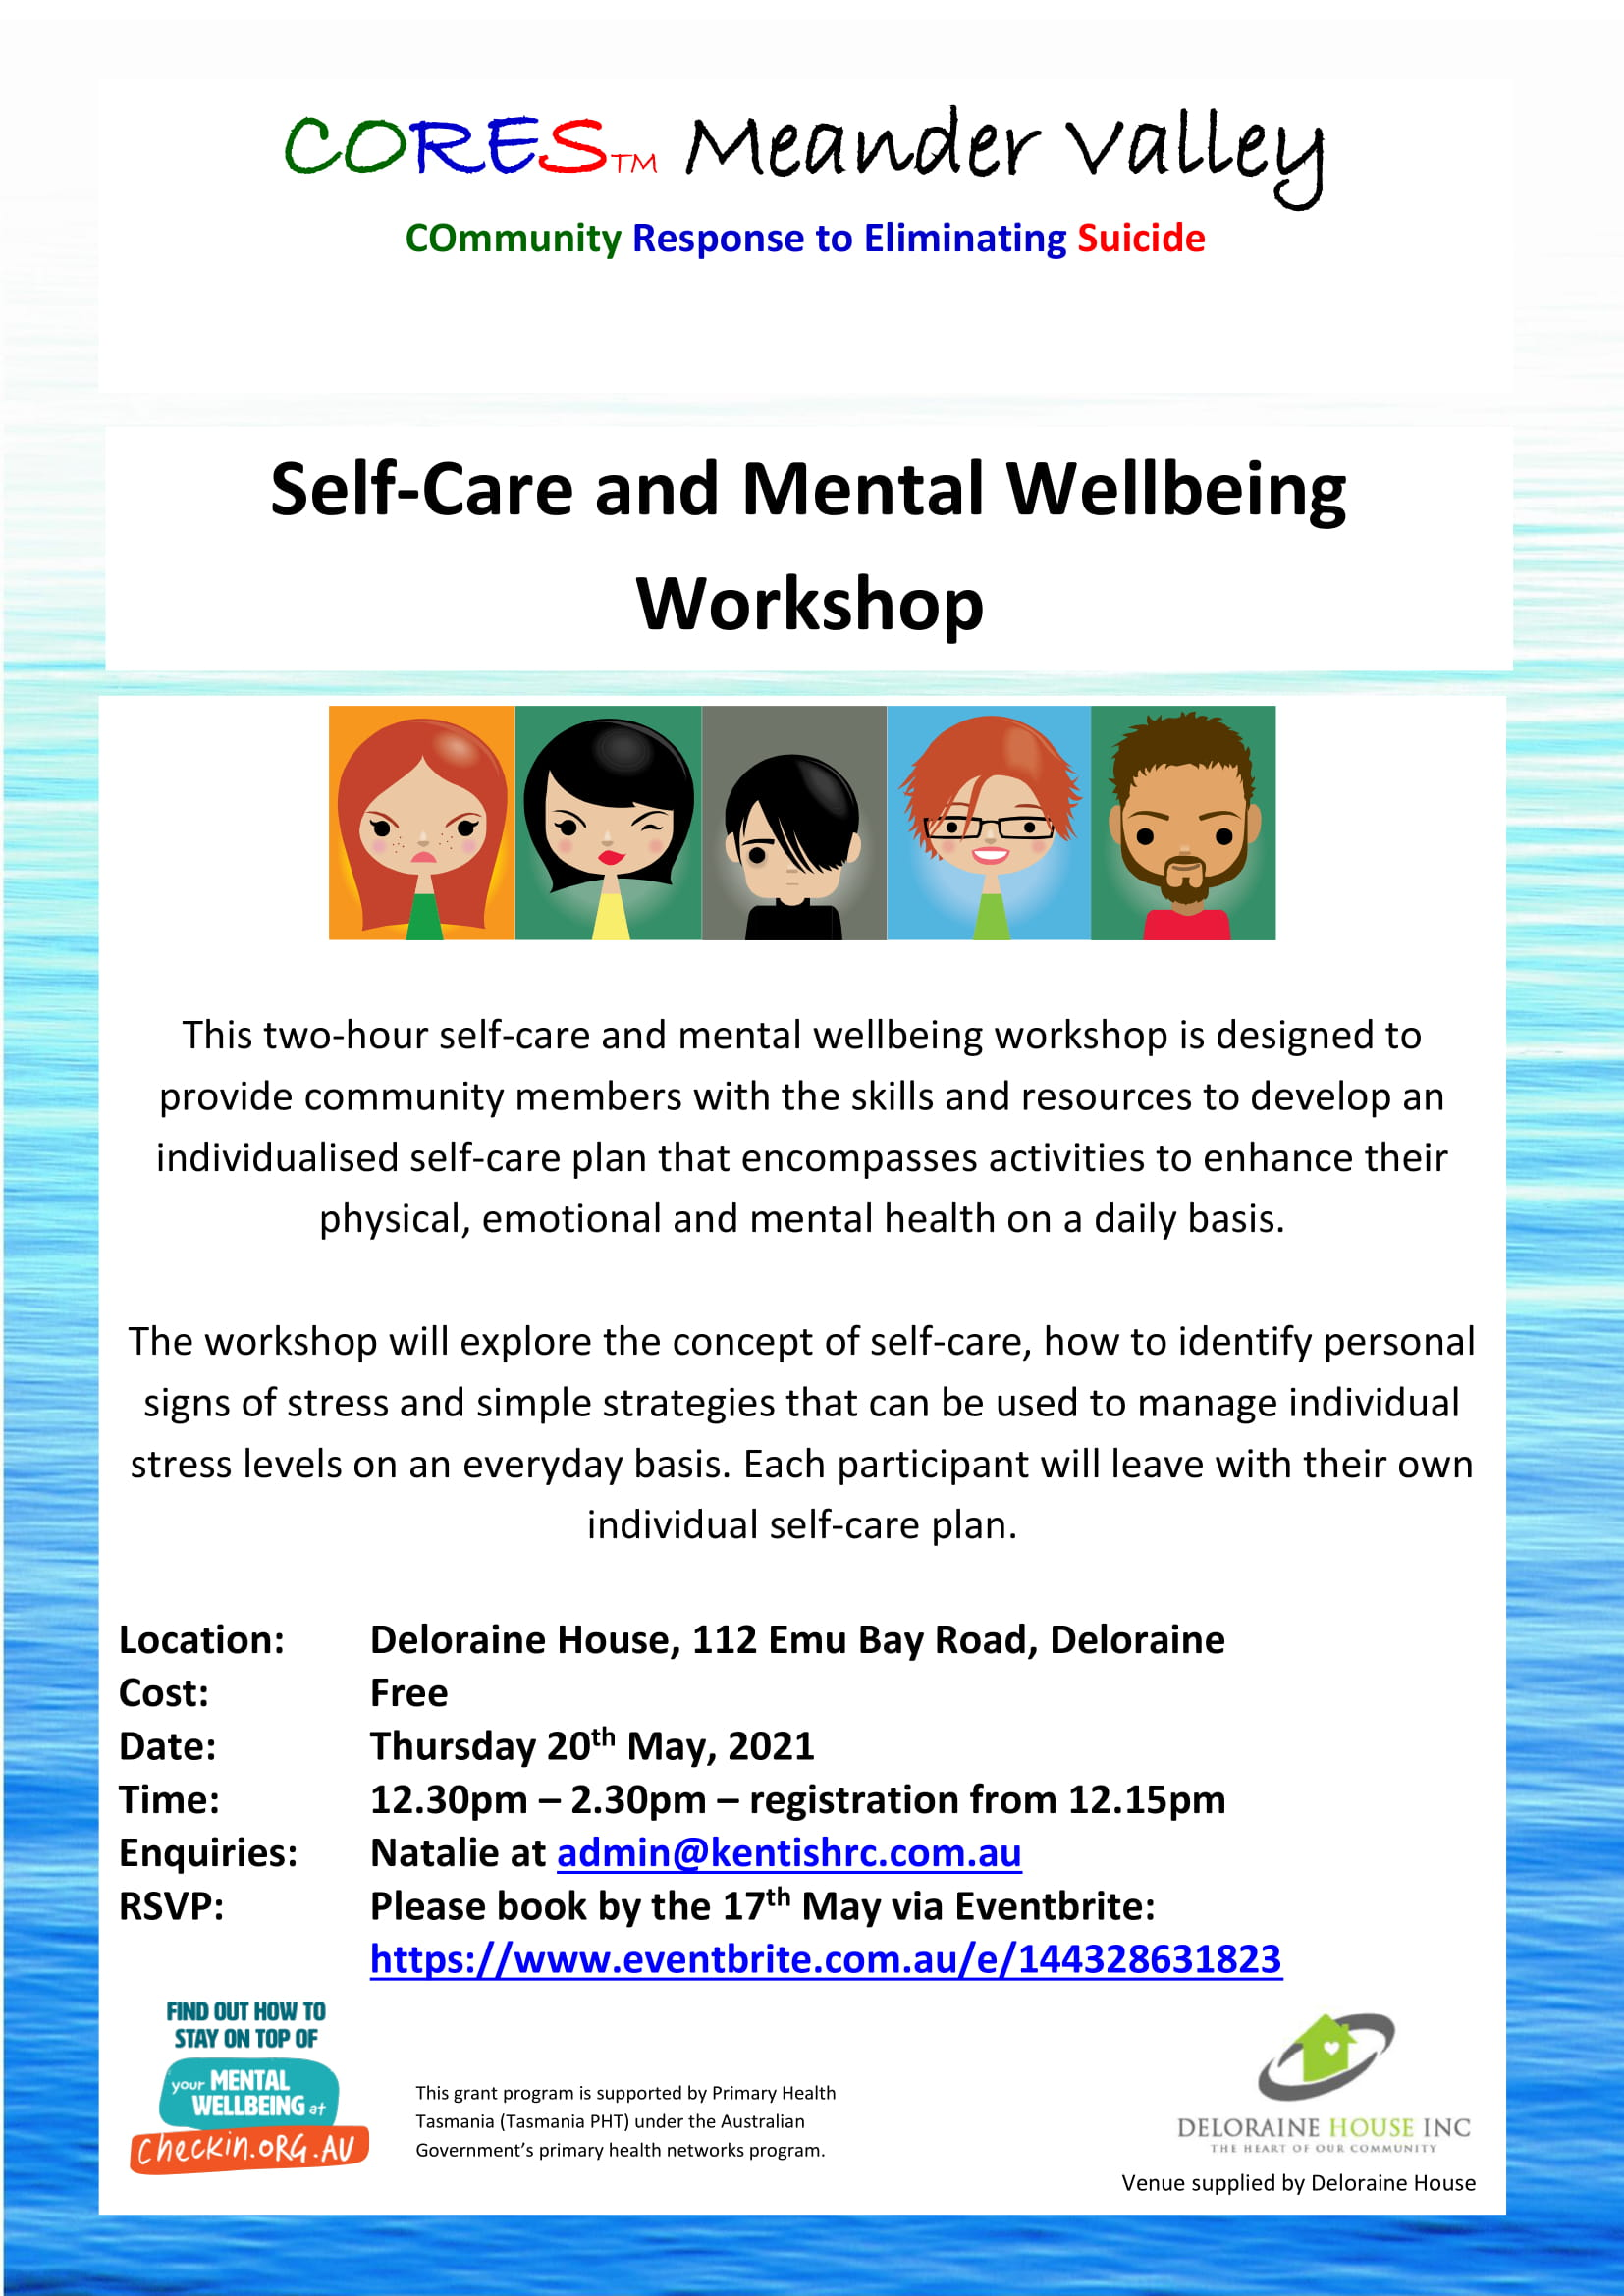 CORES Self-Care and Mental Wellbeing Deloraine May 2021 fb